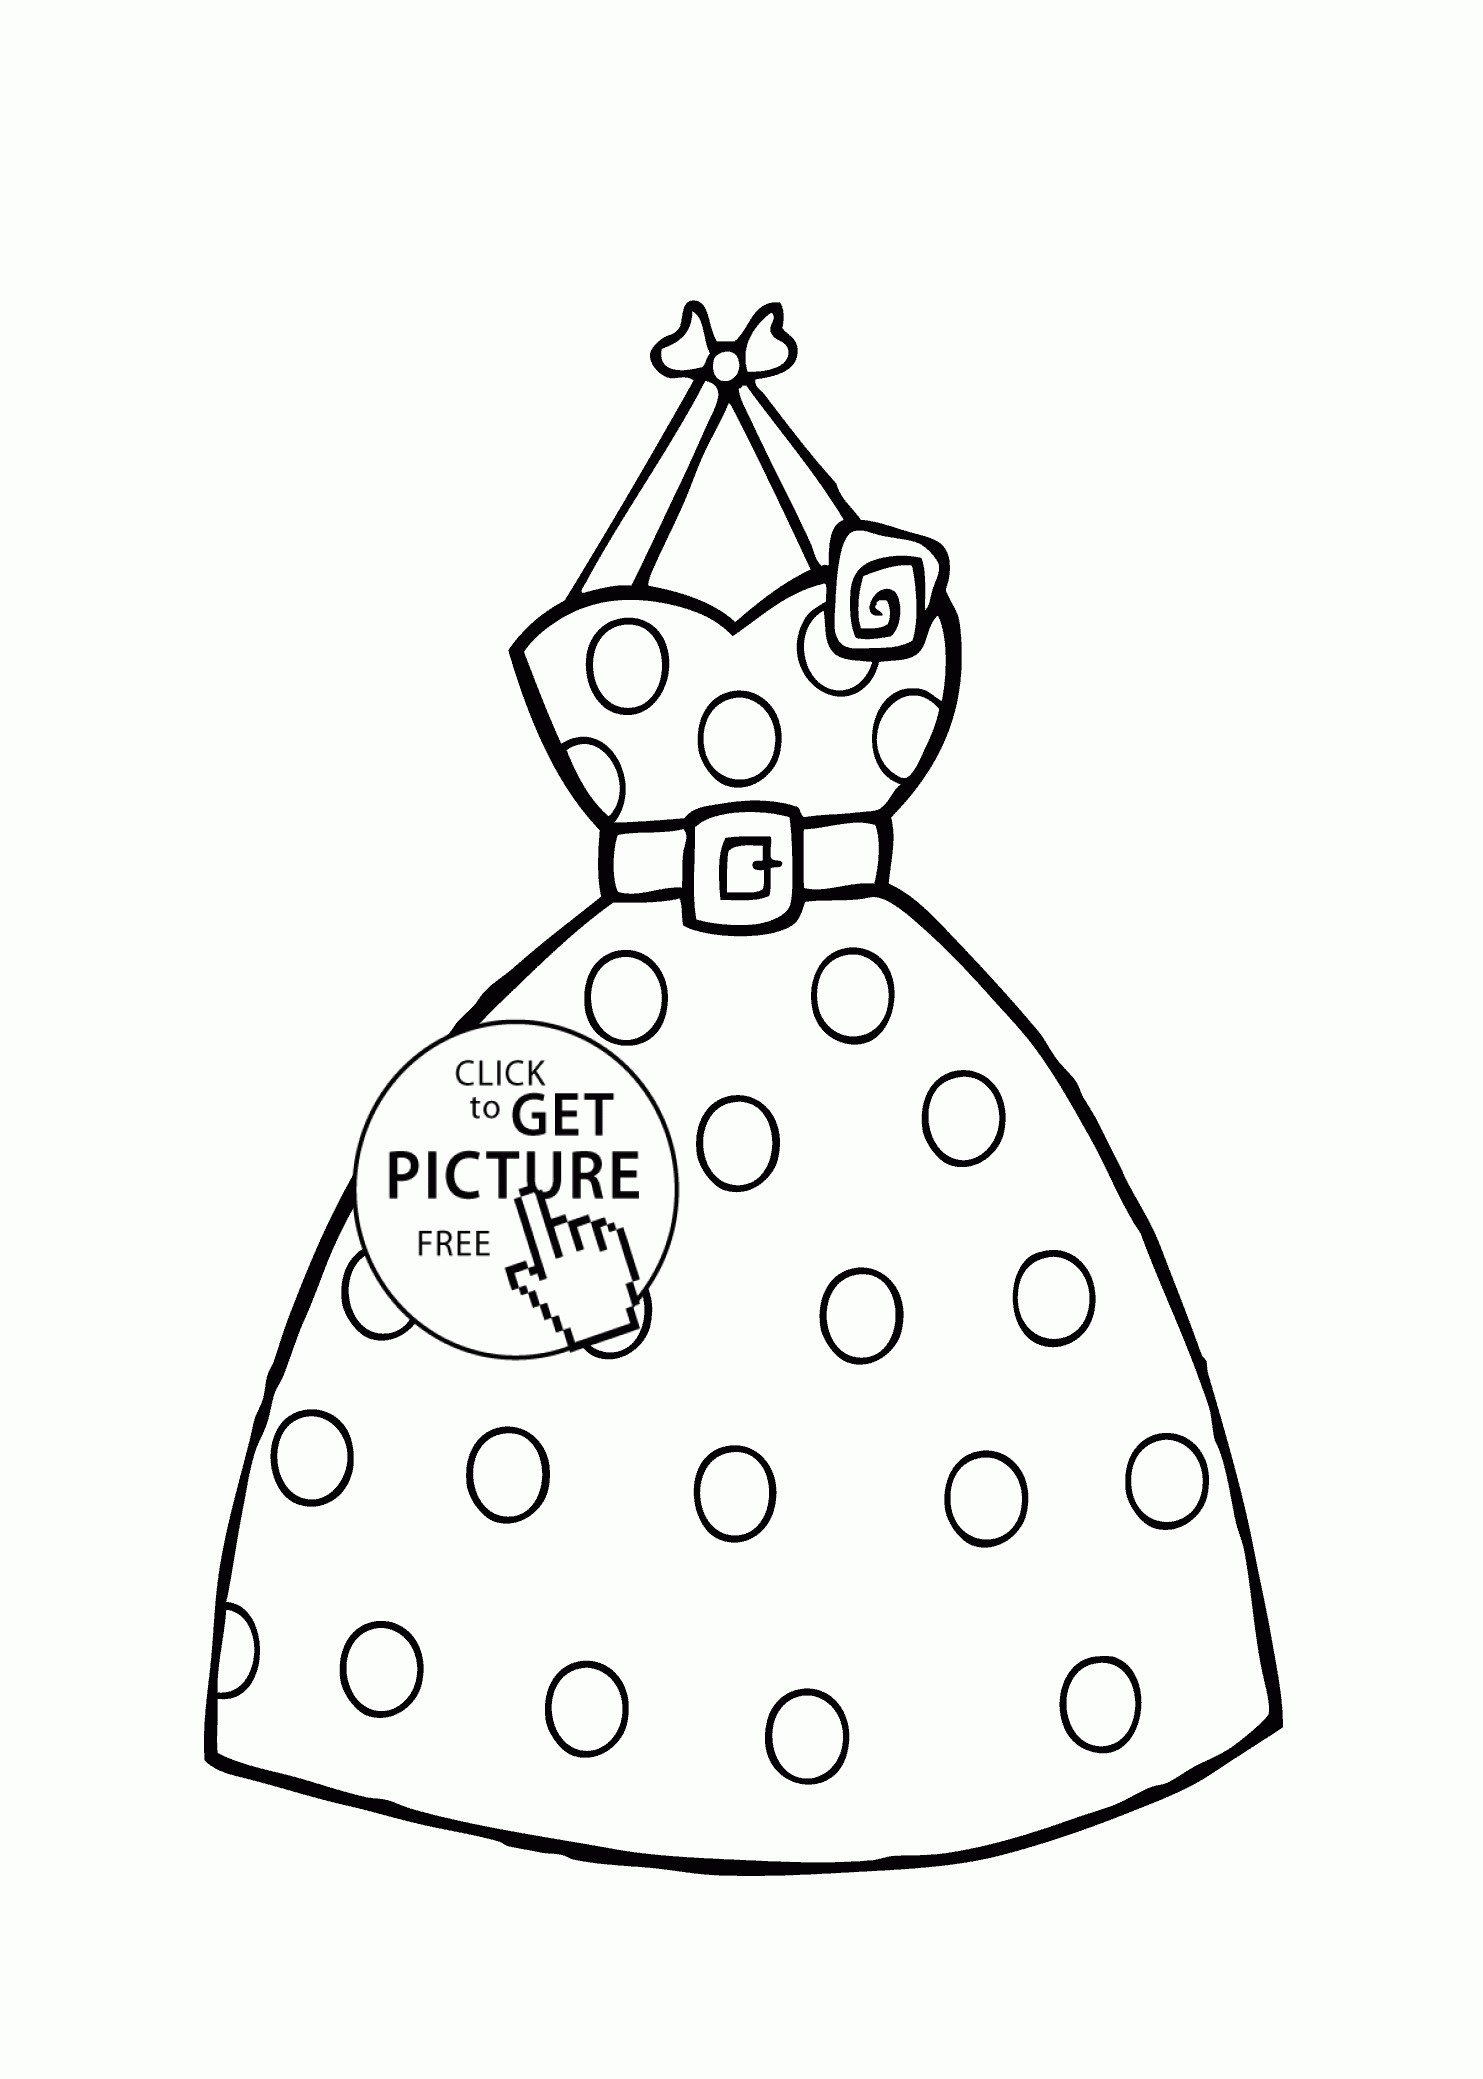 1483x2079 Dress Lace Coloring Page For Girls Inspirational Coloring Pages